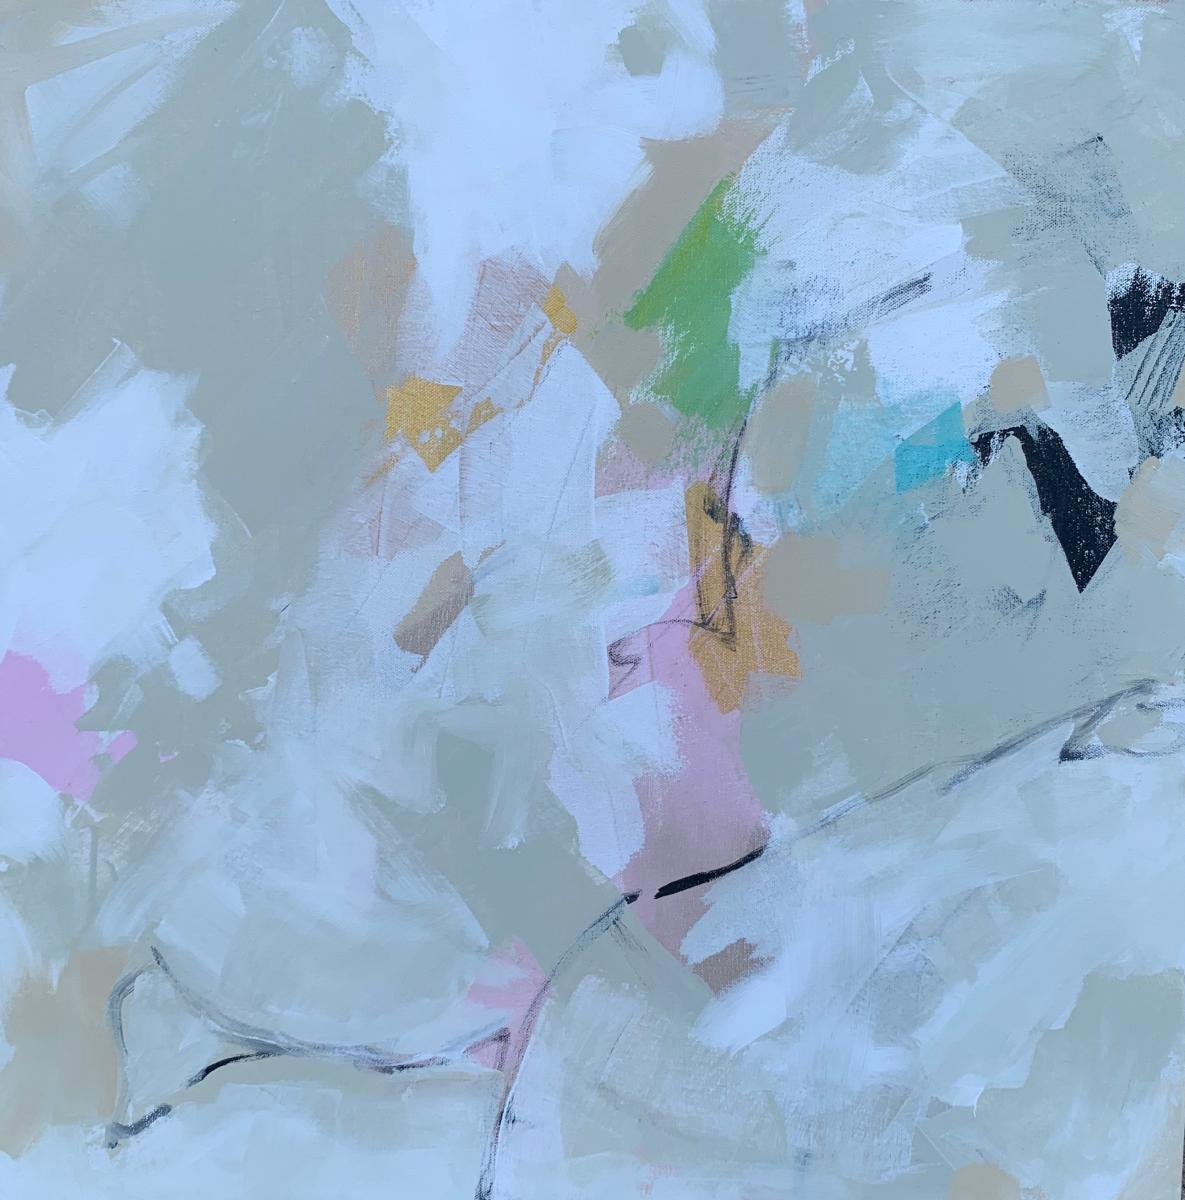 Abstract Palette painting #1 20x20